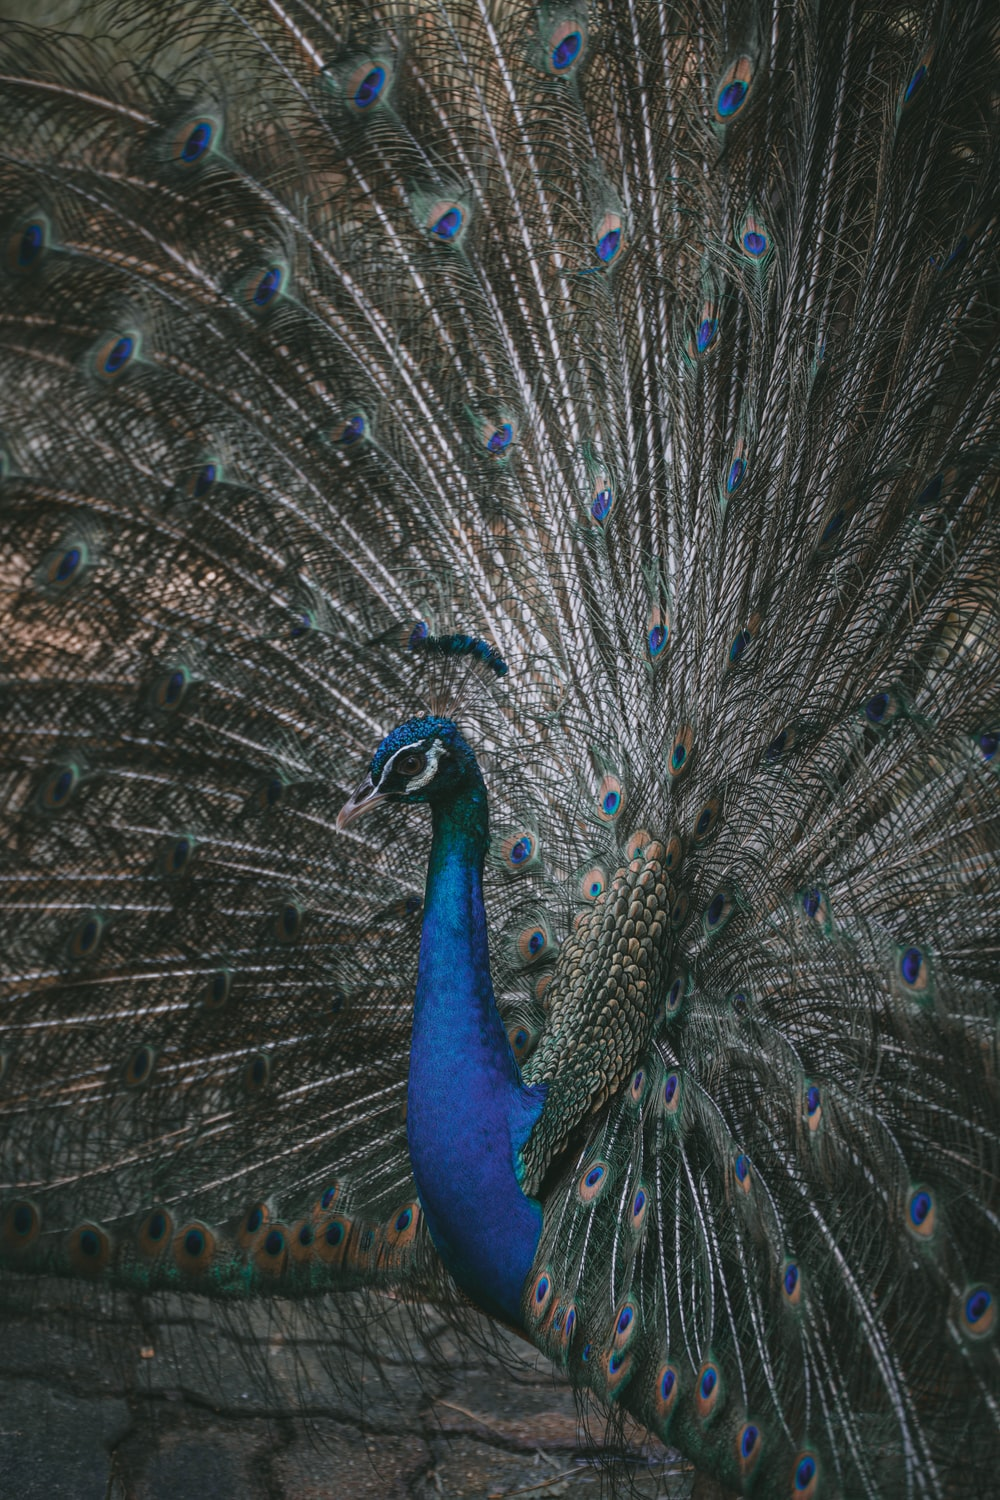 peacock showing his tail